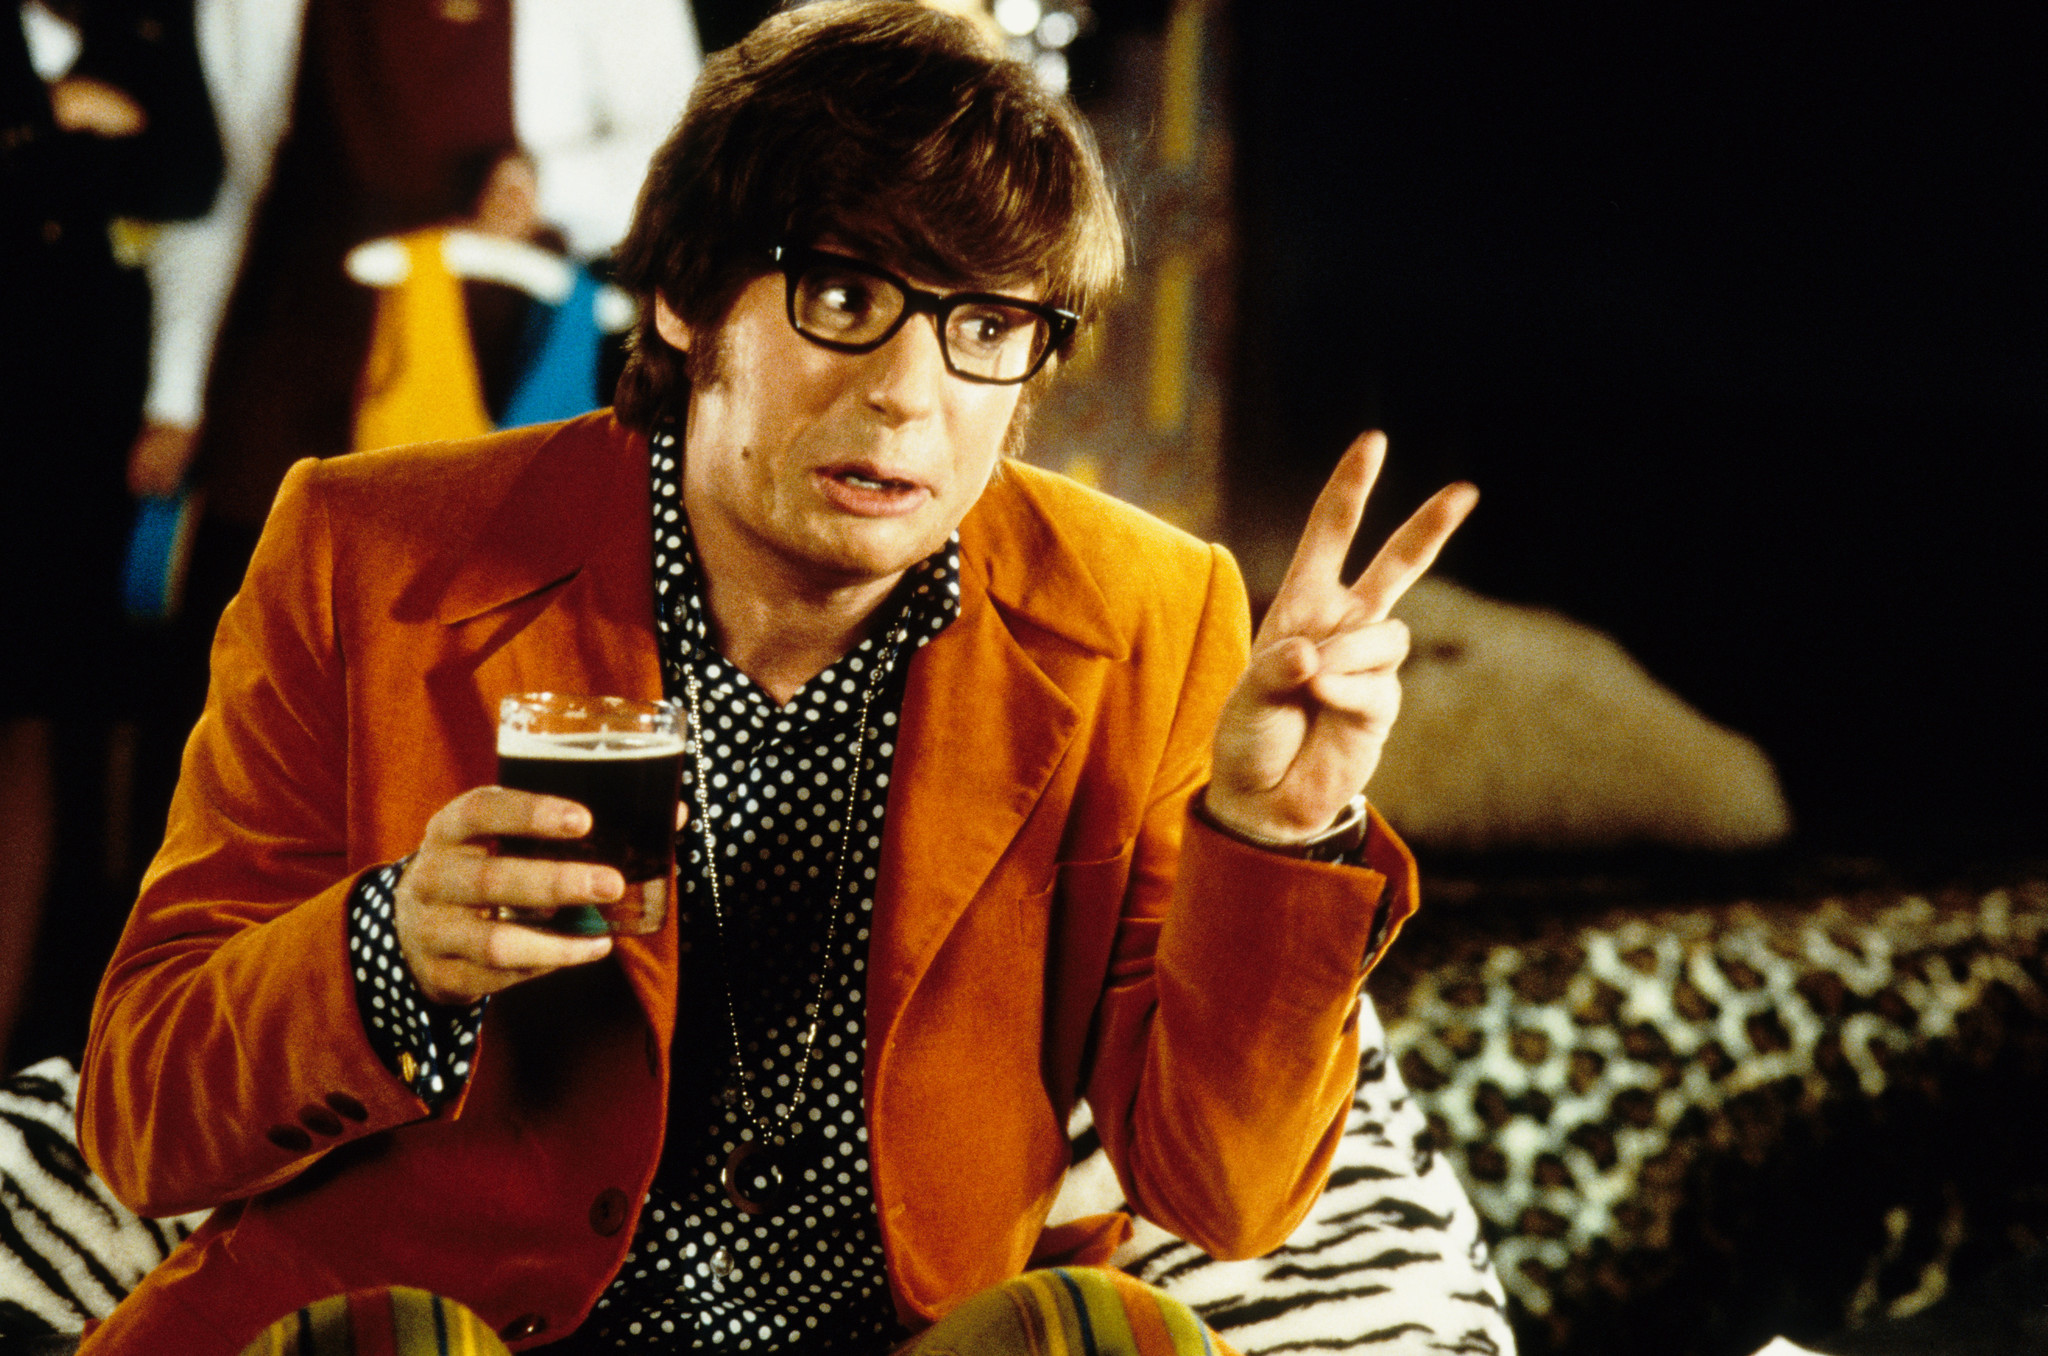 Mike Myers in Austin Powers: International Man of Mystery (1997)